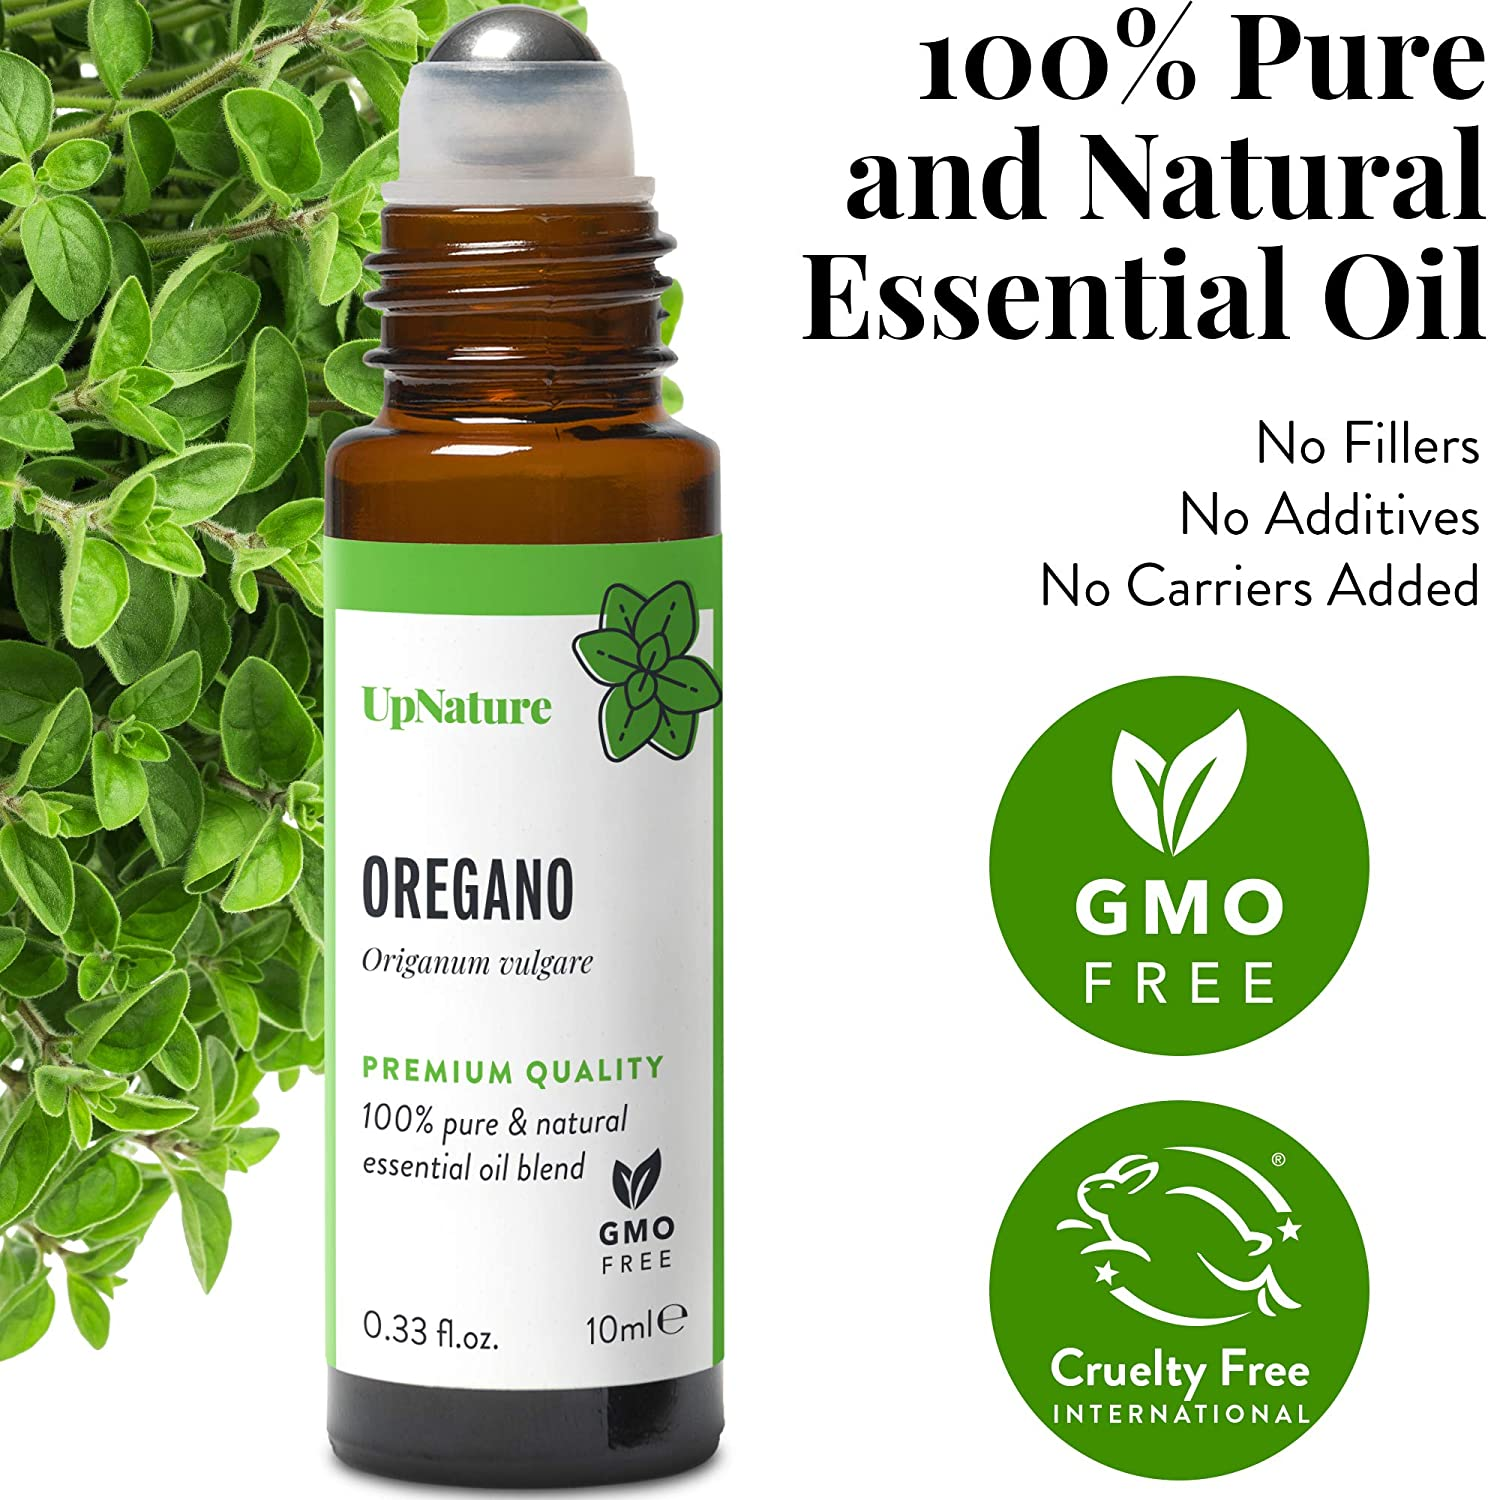 UpNature Oregano Essential Oil Roll-On - Respiratory Relief for Congestion, Pre-Diluted